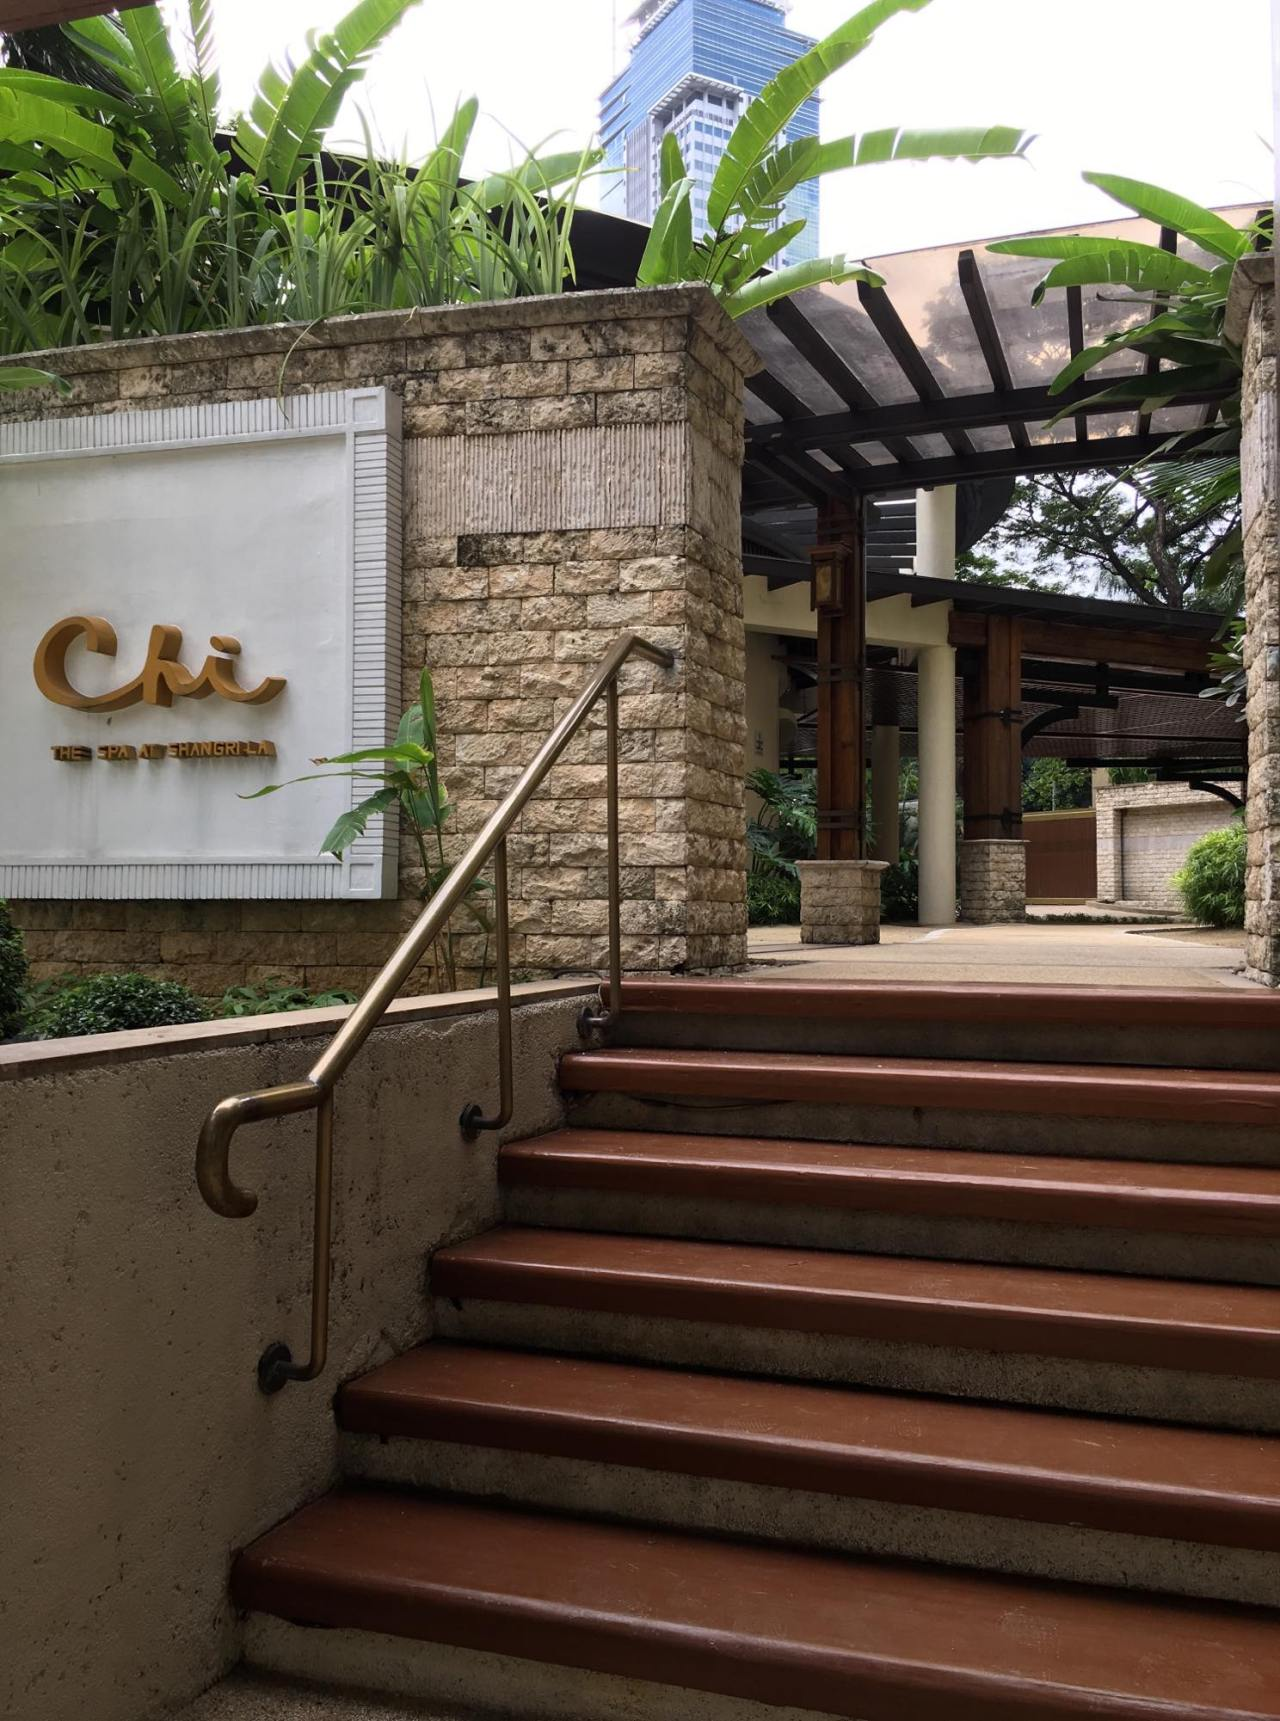 Chi, the Spa, where I had a massage during our celebration at Edsa Shangri-la